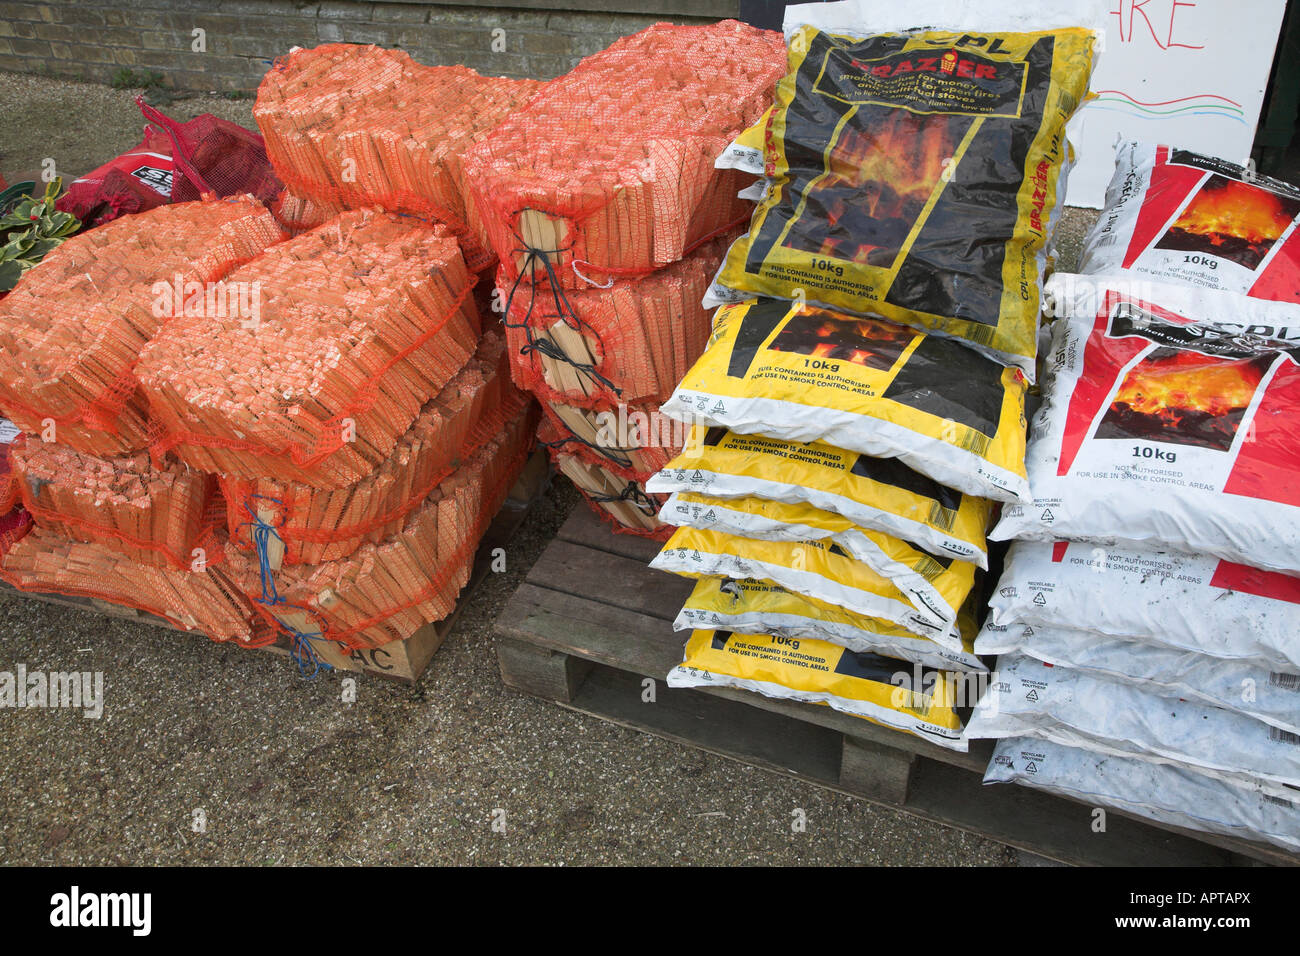 Bags of coal and fire wood on sale - Stock Image